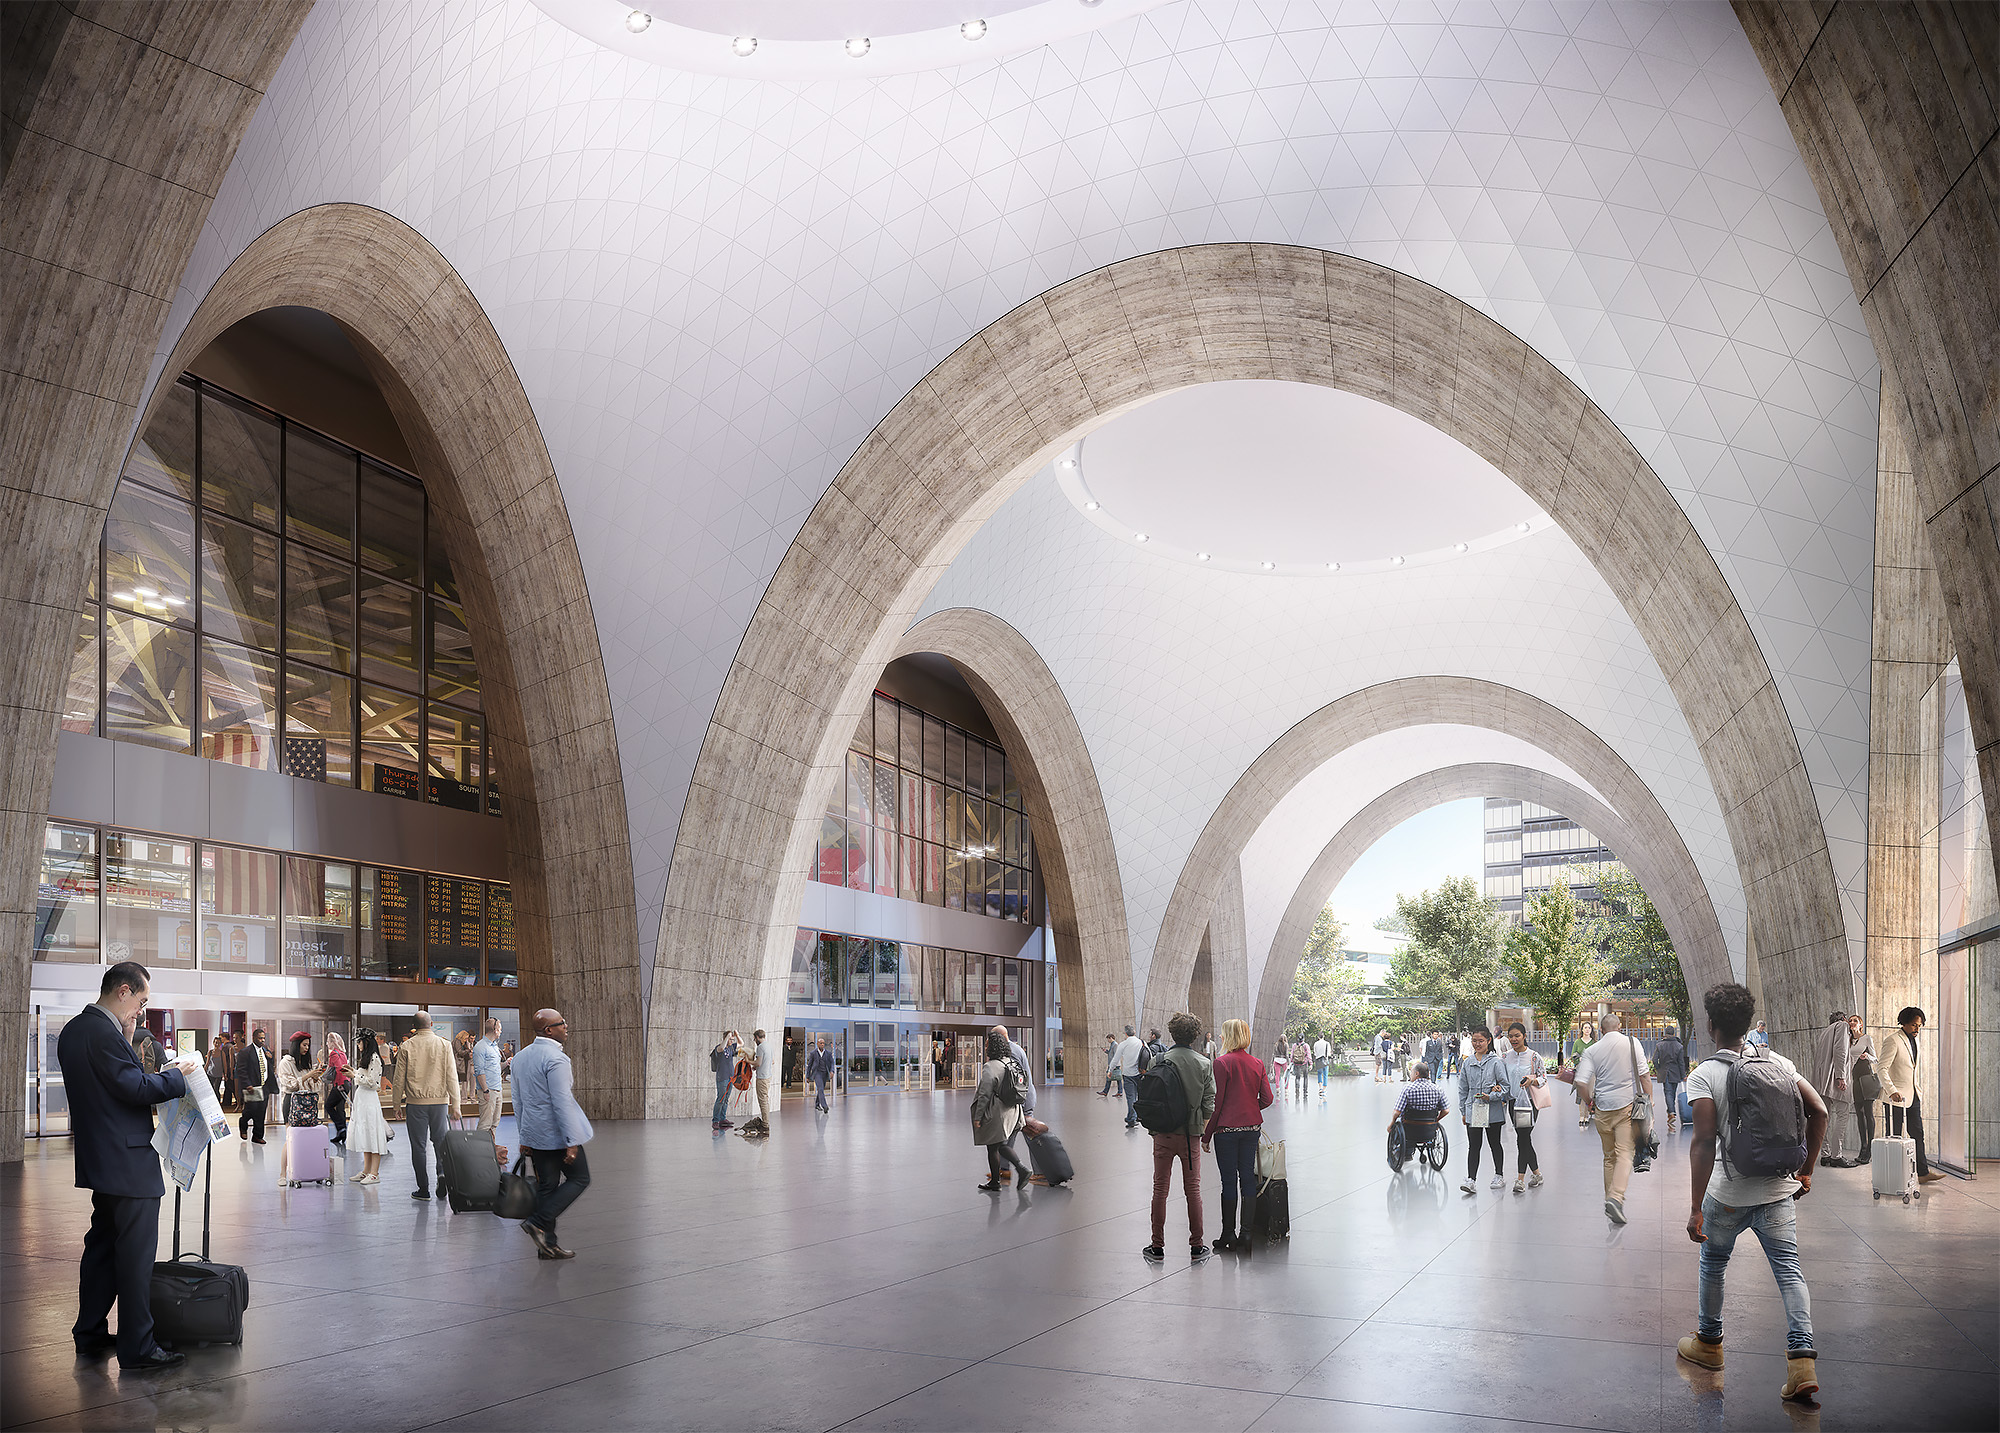 South Station Air Rights Project - Construction Anticipated to Restart on May 18